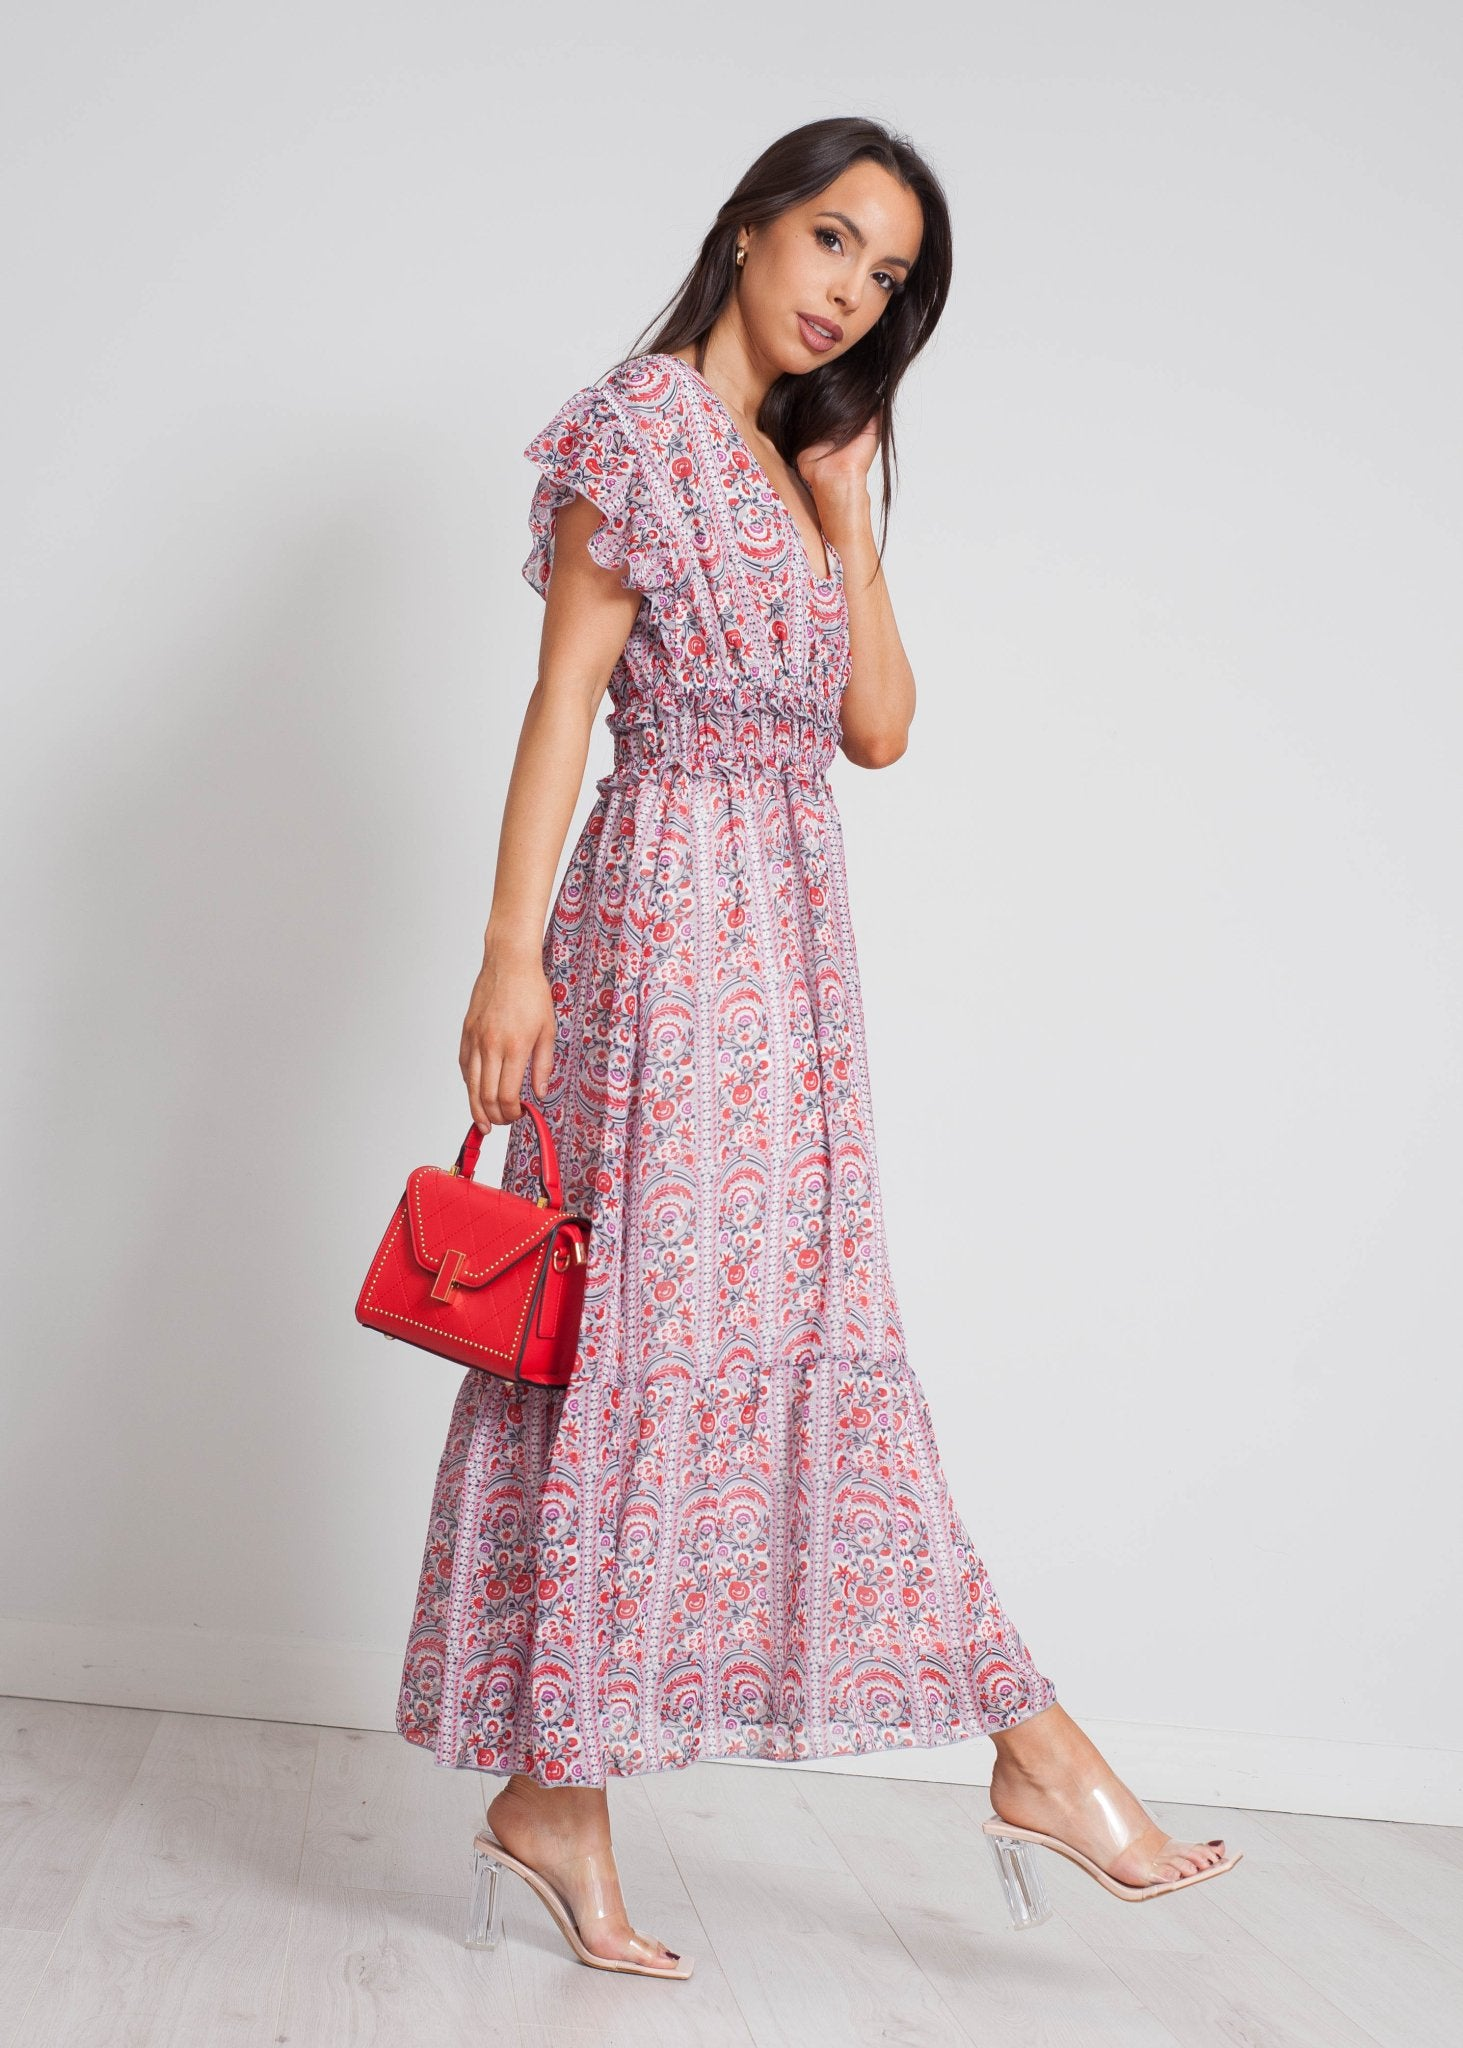 Becca Printed Midi Dress In Purple Mix - The Walk in Wardrobe